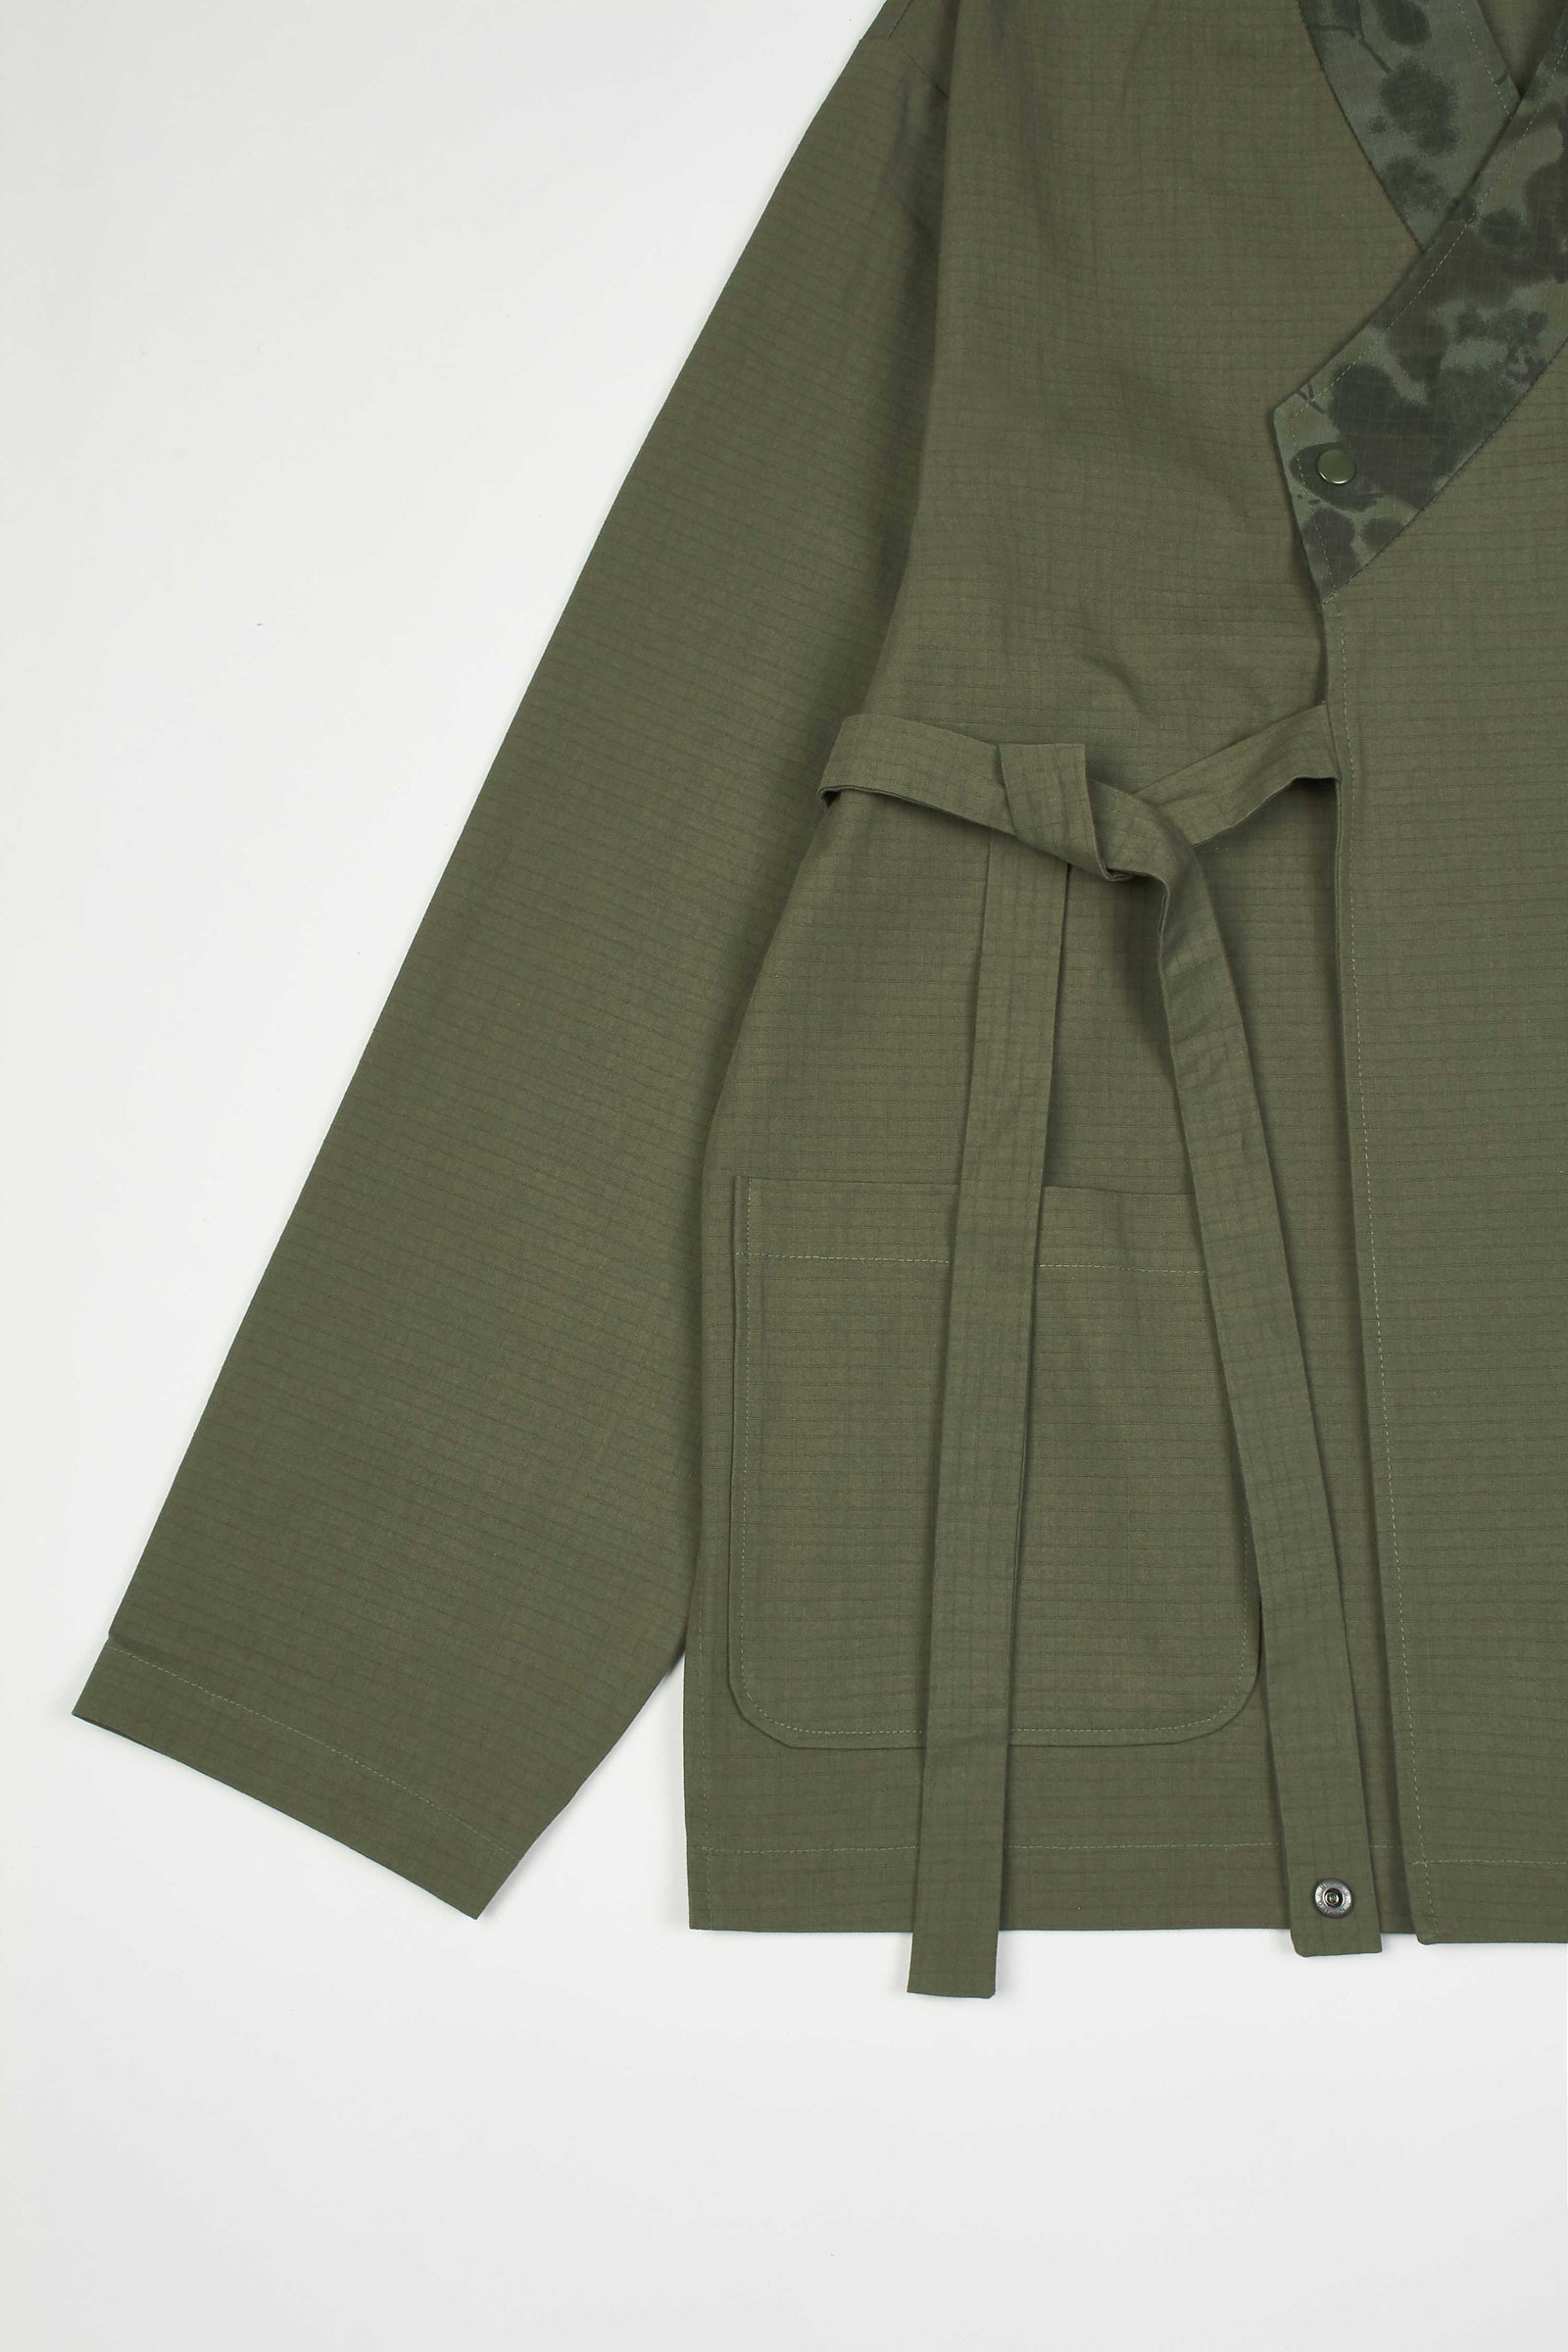 Photo of Army Green Double Layered Jeogori Bomber Jacket, number 13